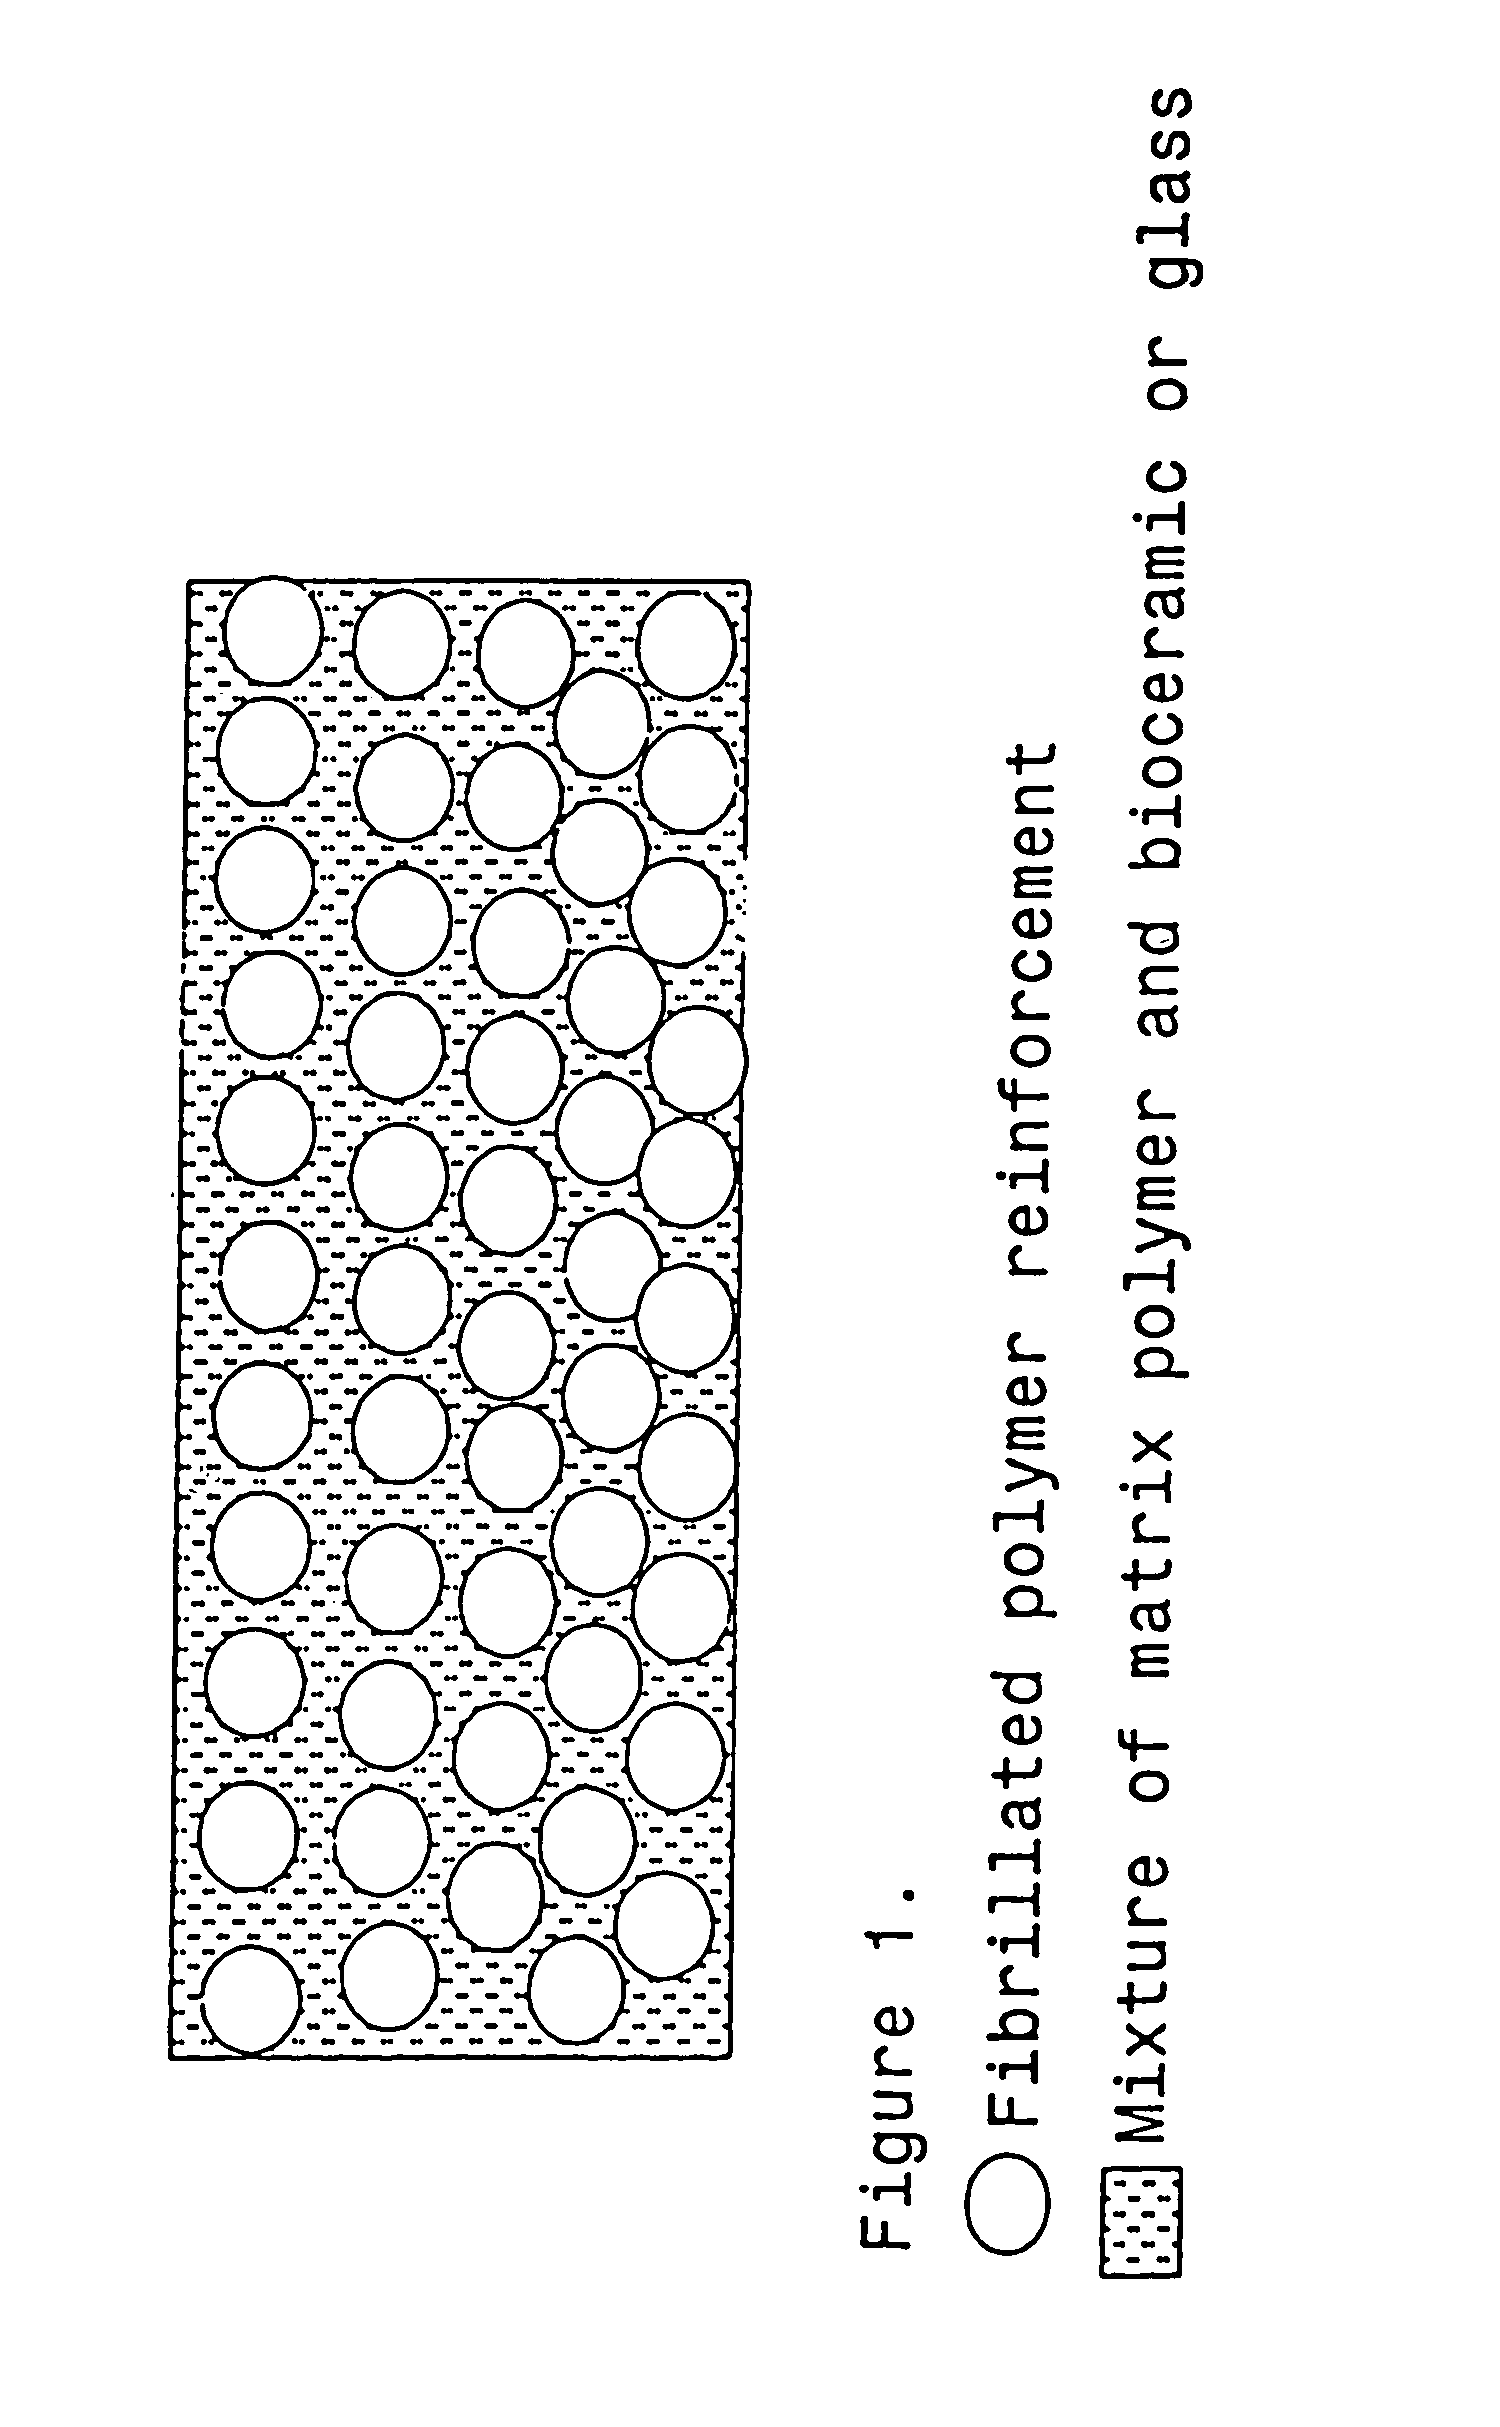 Osteosynthesis material